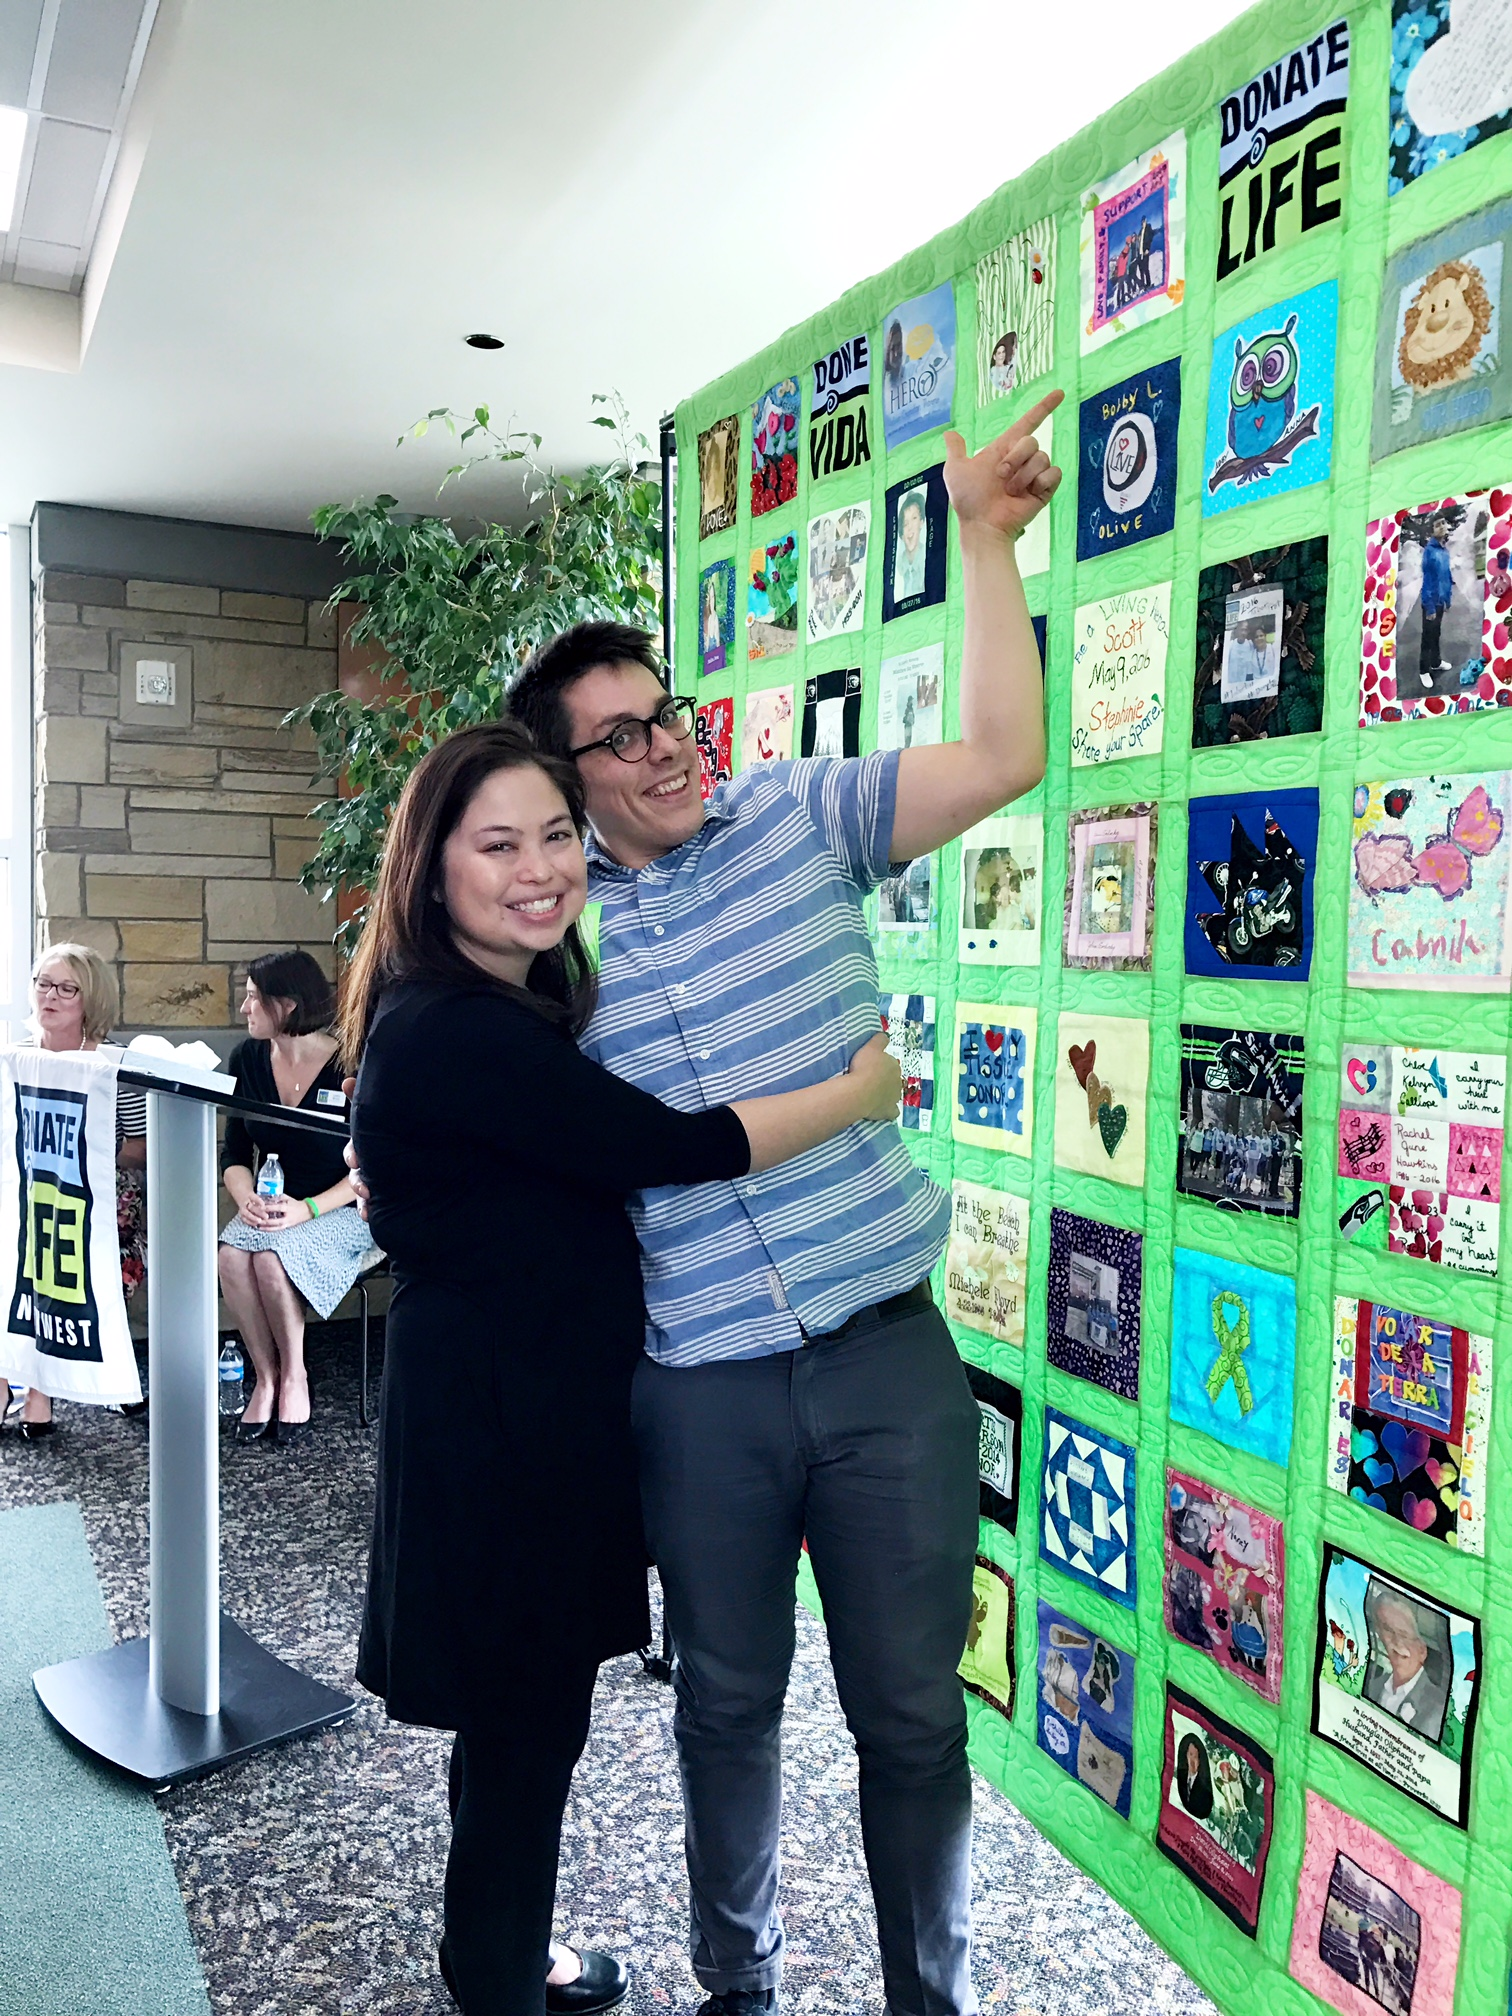 Joshua and I pointing to our square piece at the Donate Life NW quilt unveiling.